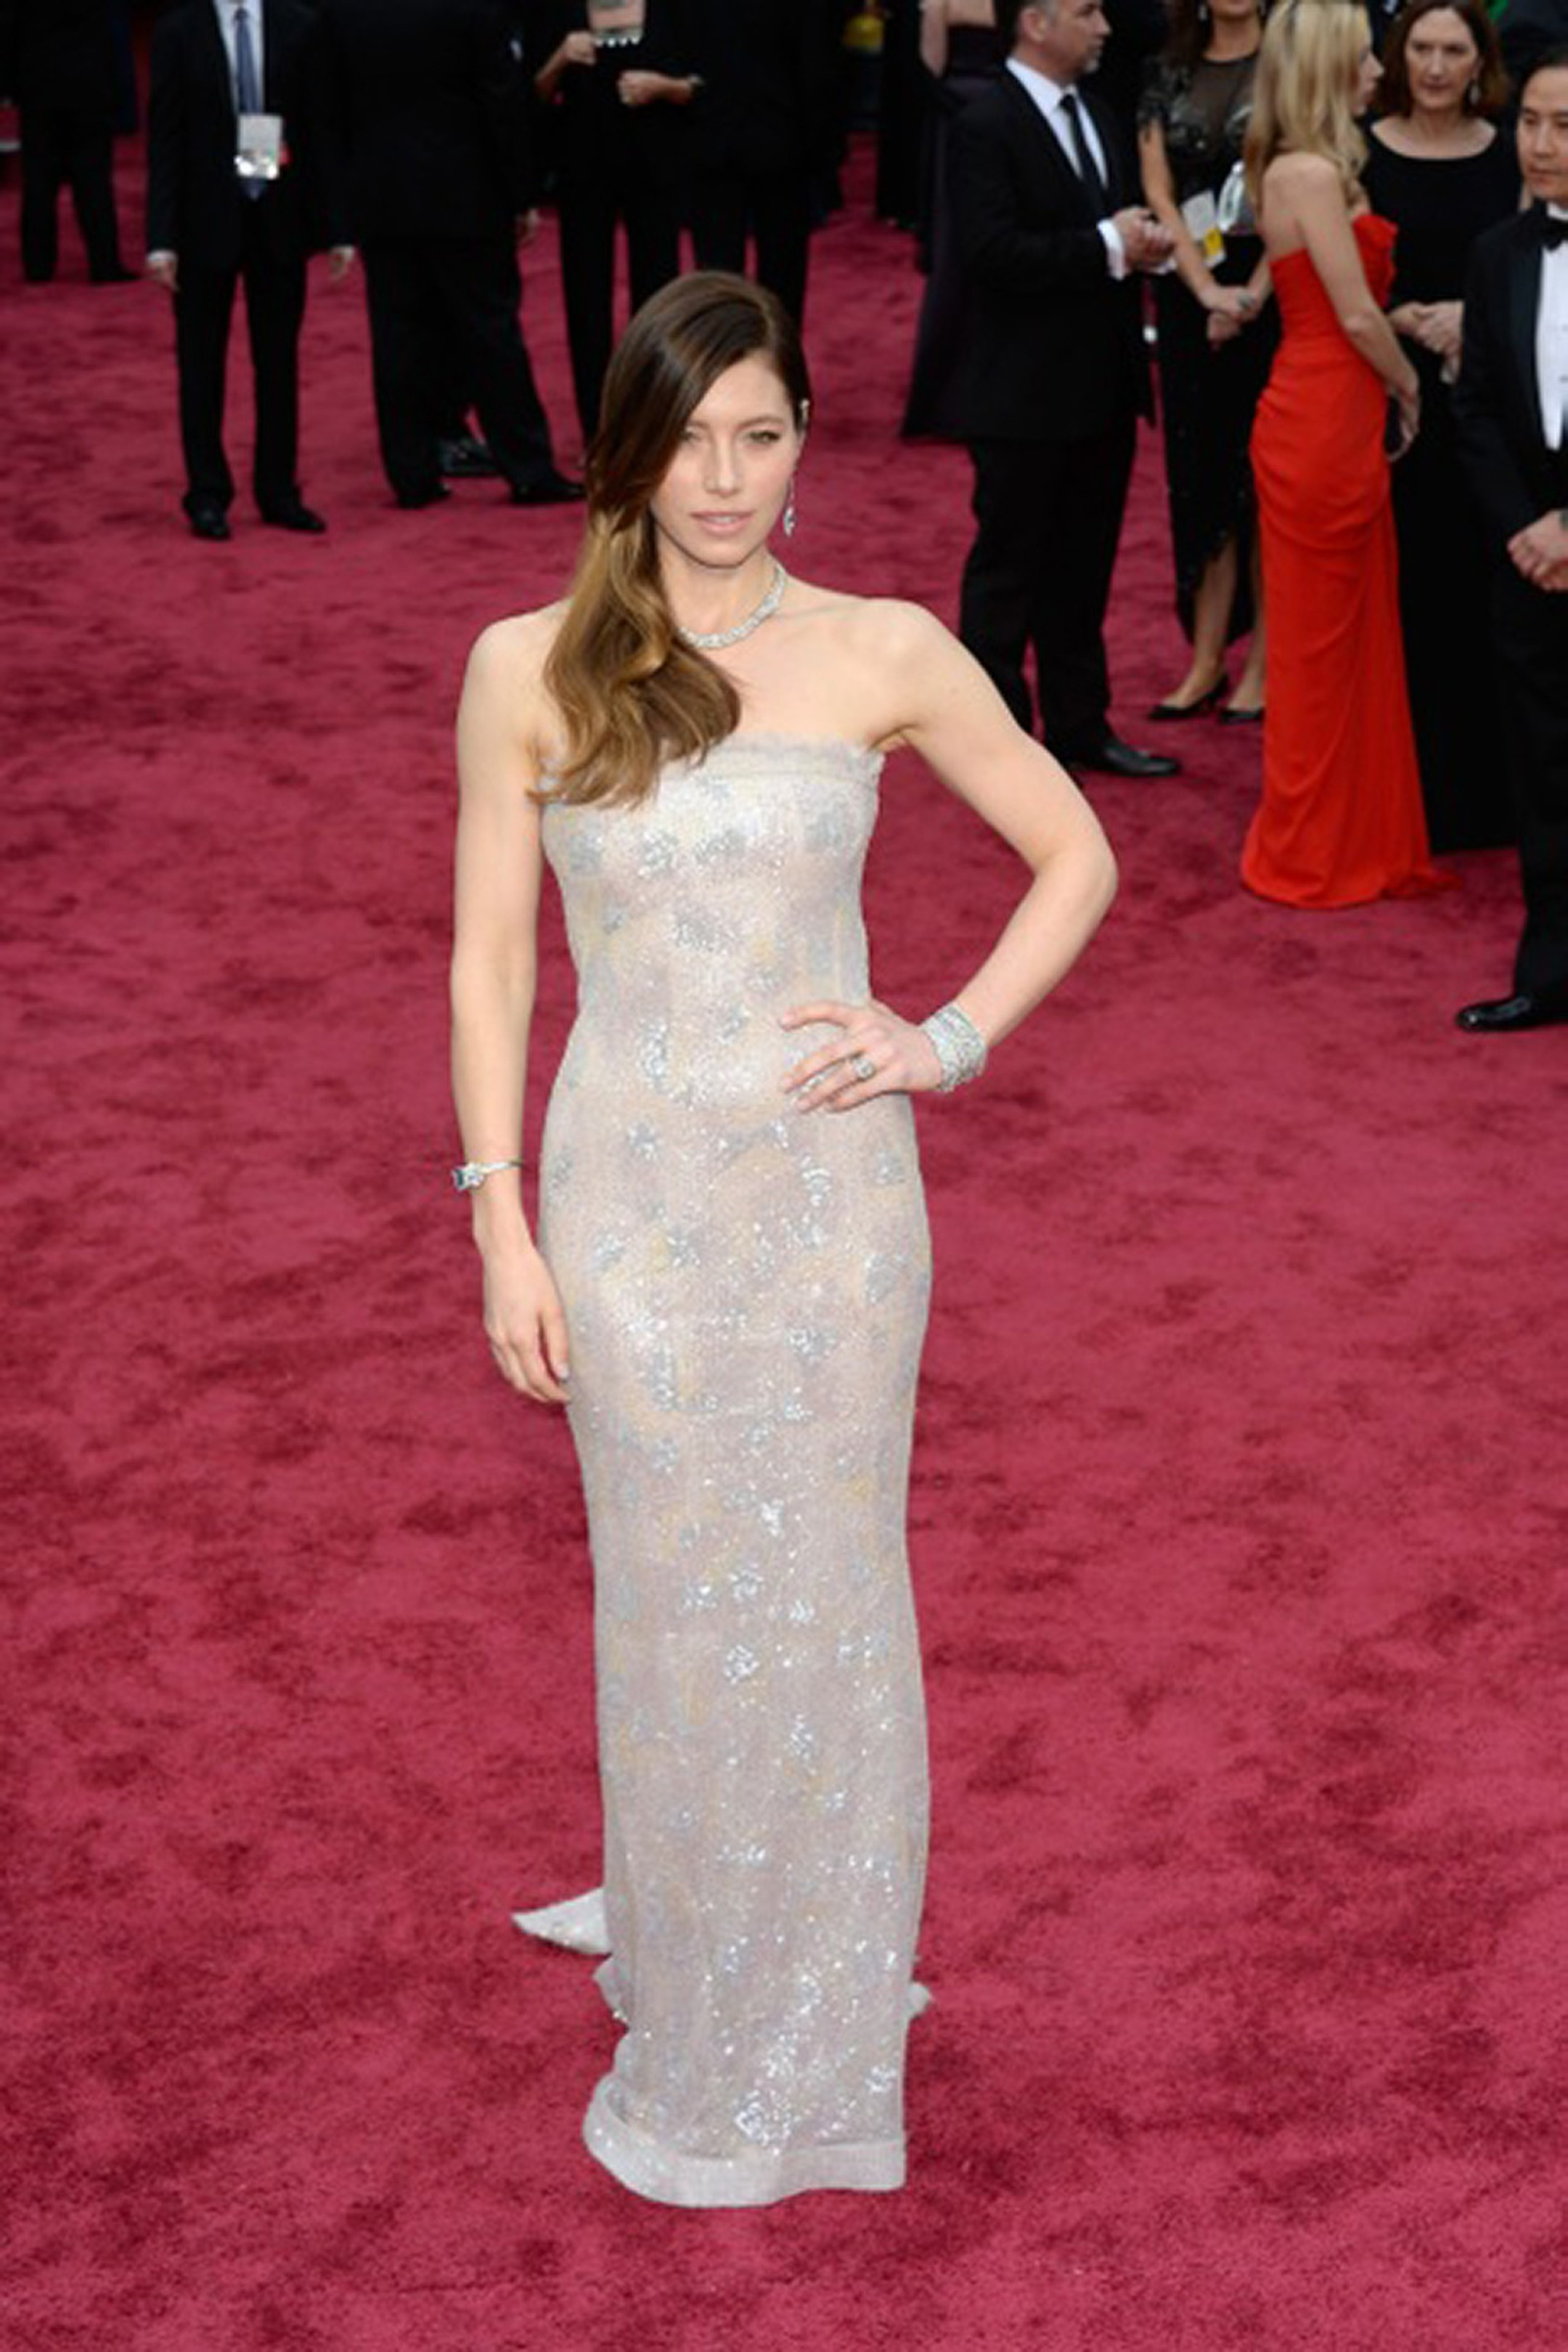 Jessica Biel wore Haute Couture Chanel and Tiffany & Co. necklace, earrings, and bracelet at the 86th Academy Awards. Image by: © Tiffany & Co.